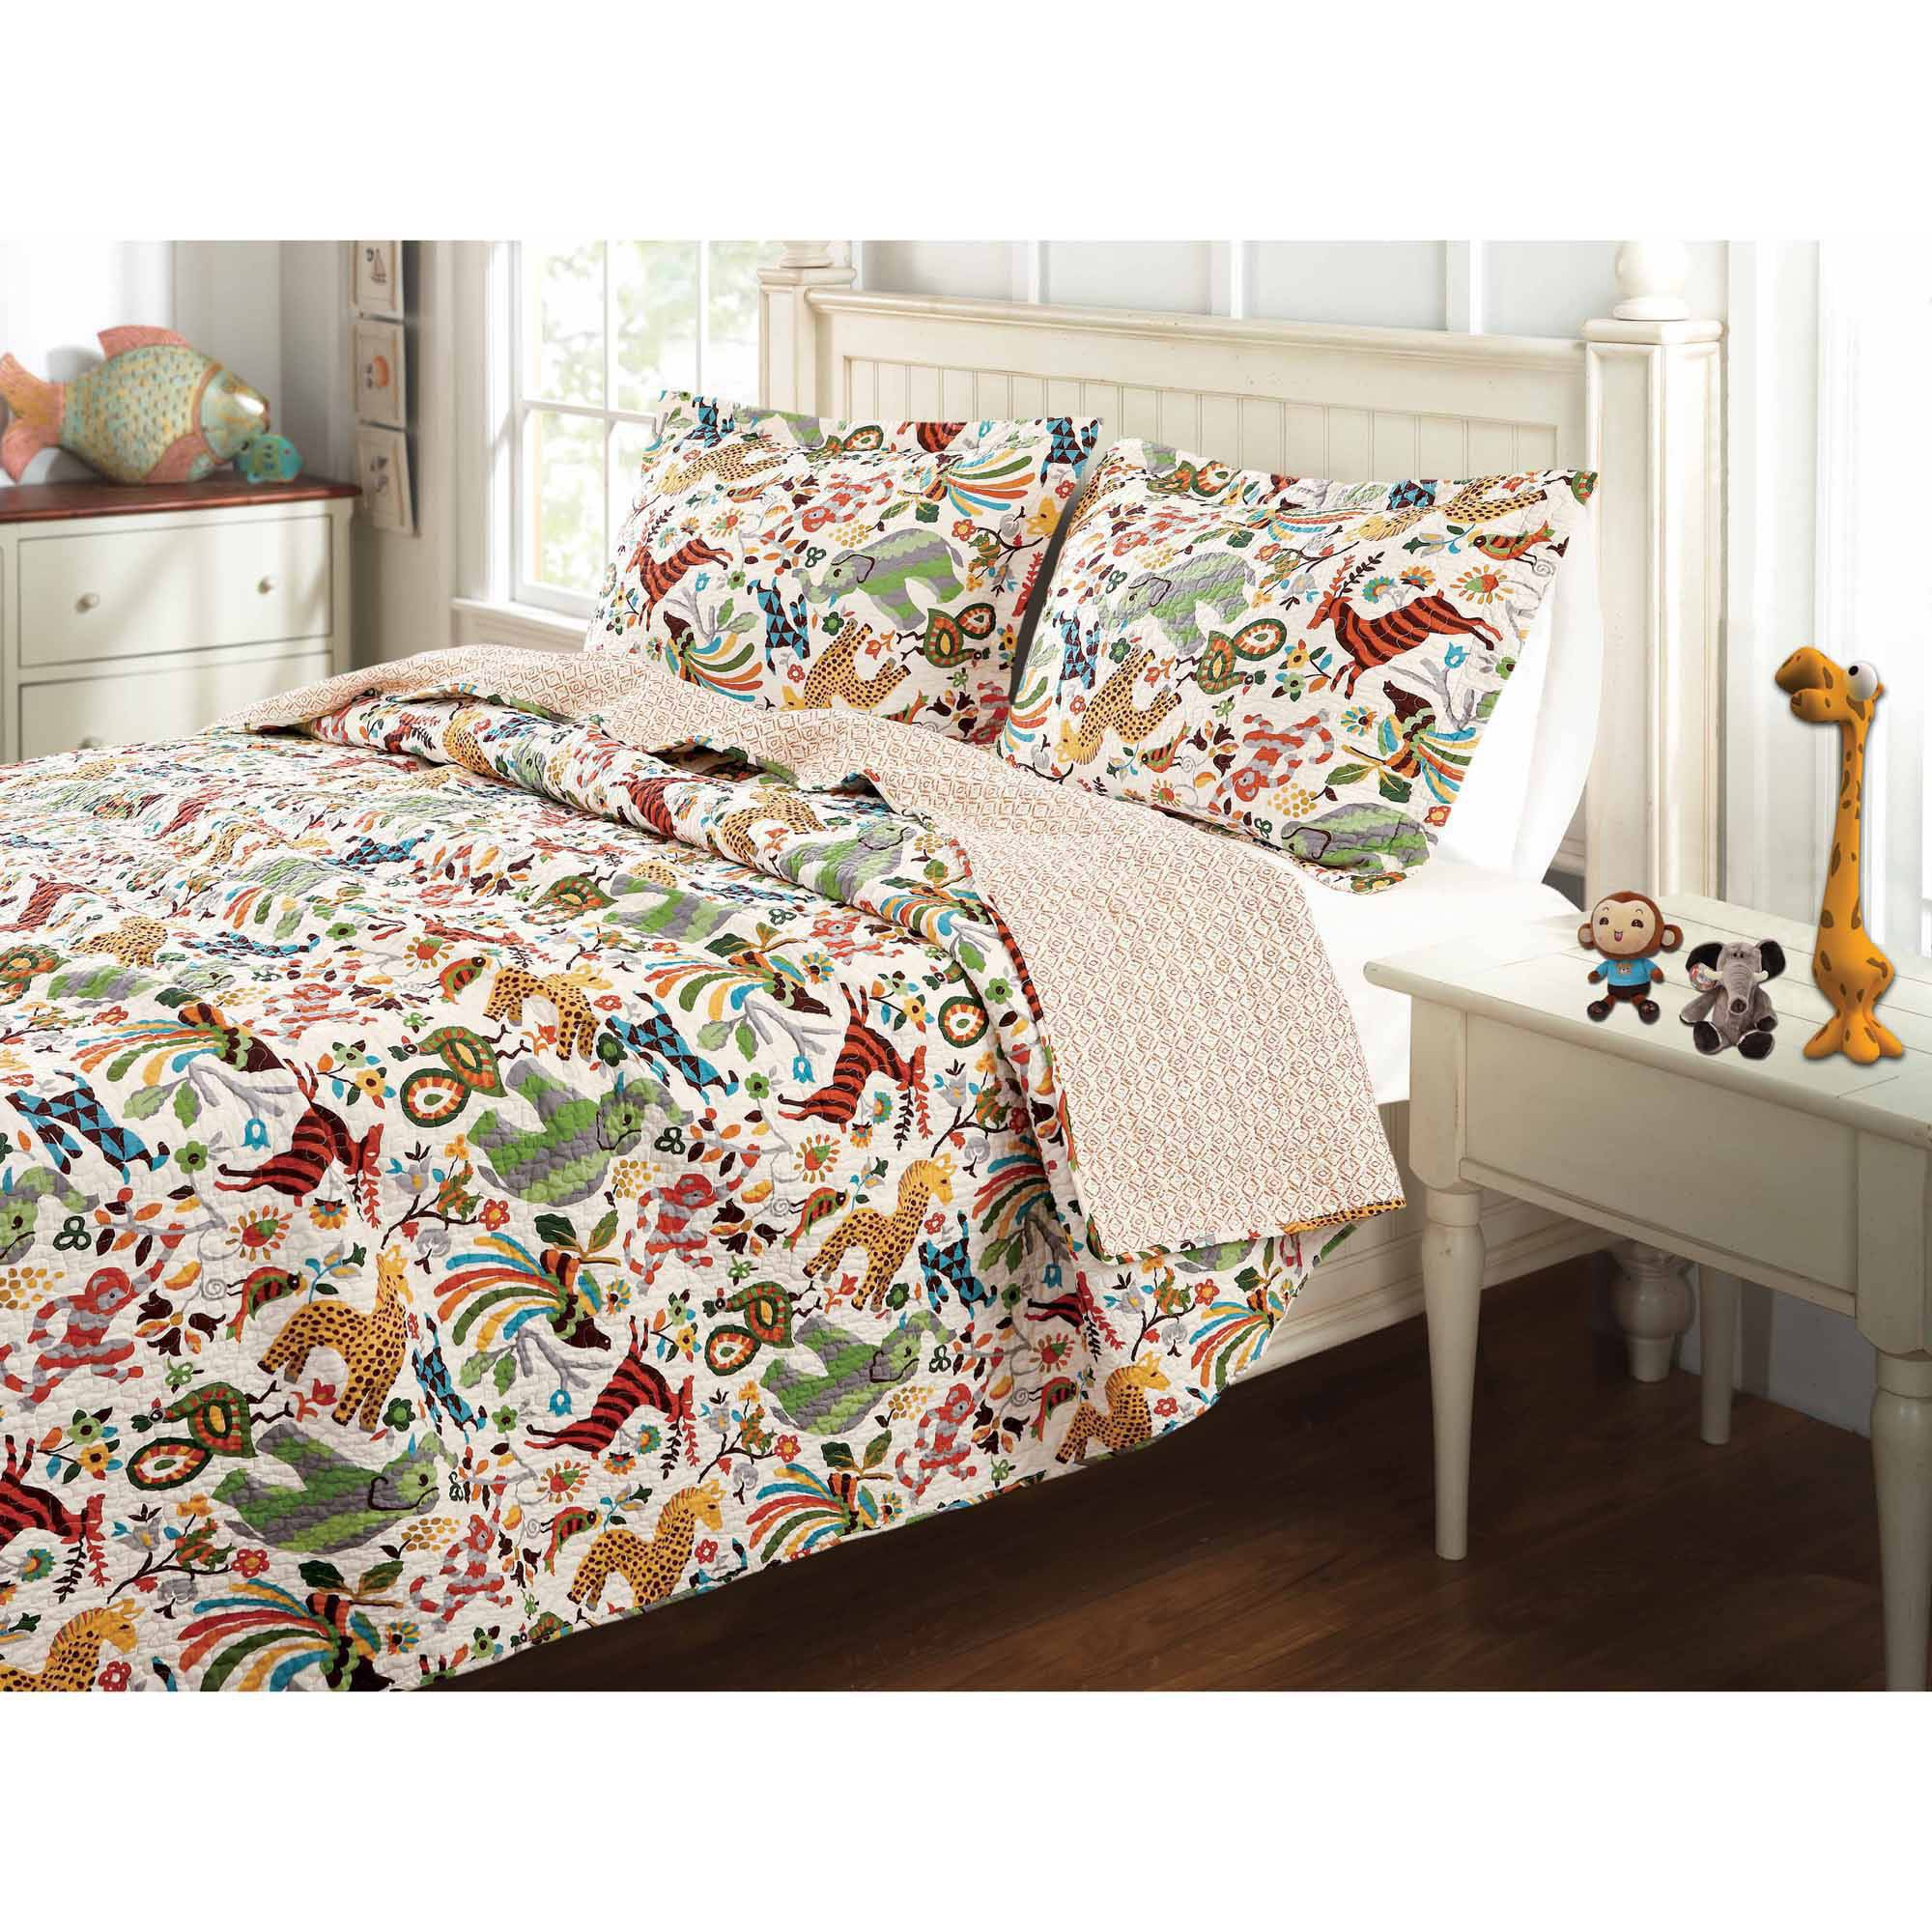 Greenland Home Fashions Global Trends Serengeti Place Bedding Quilt Set